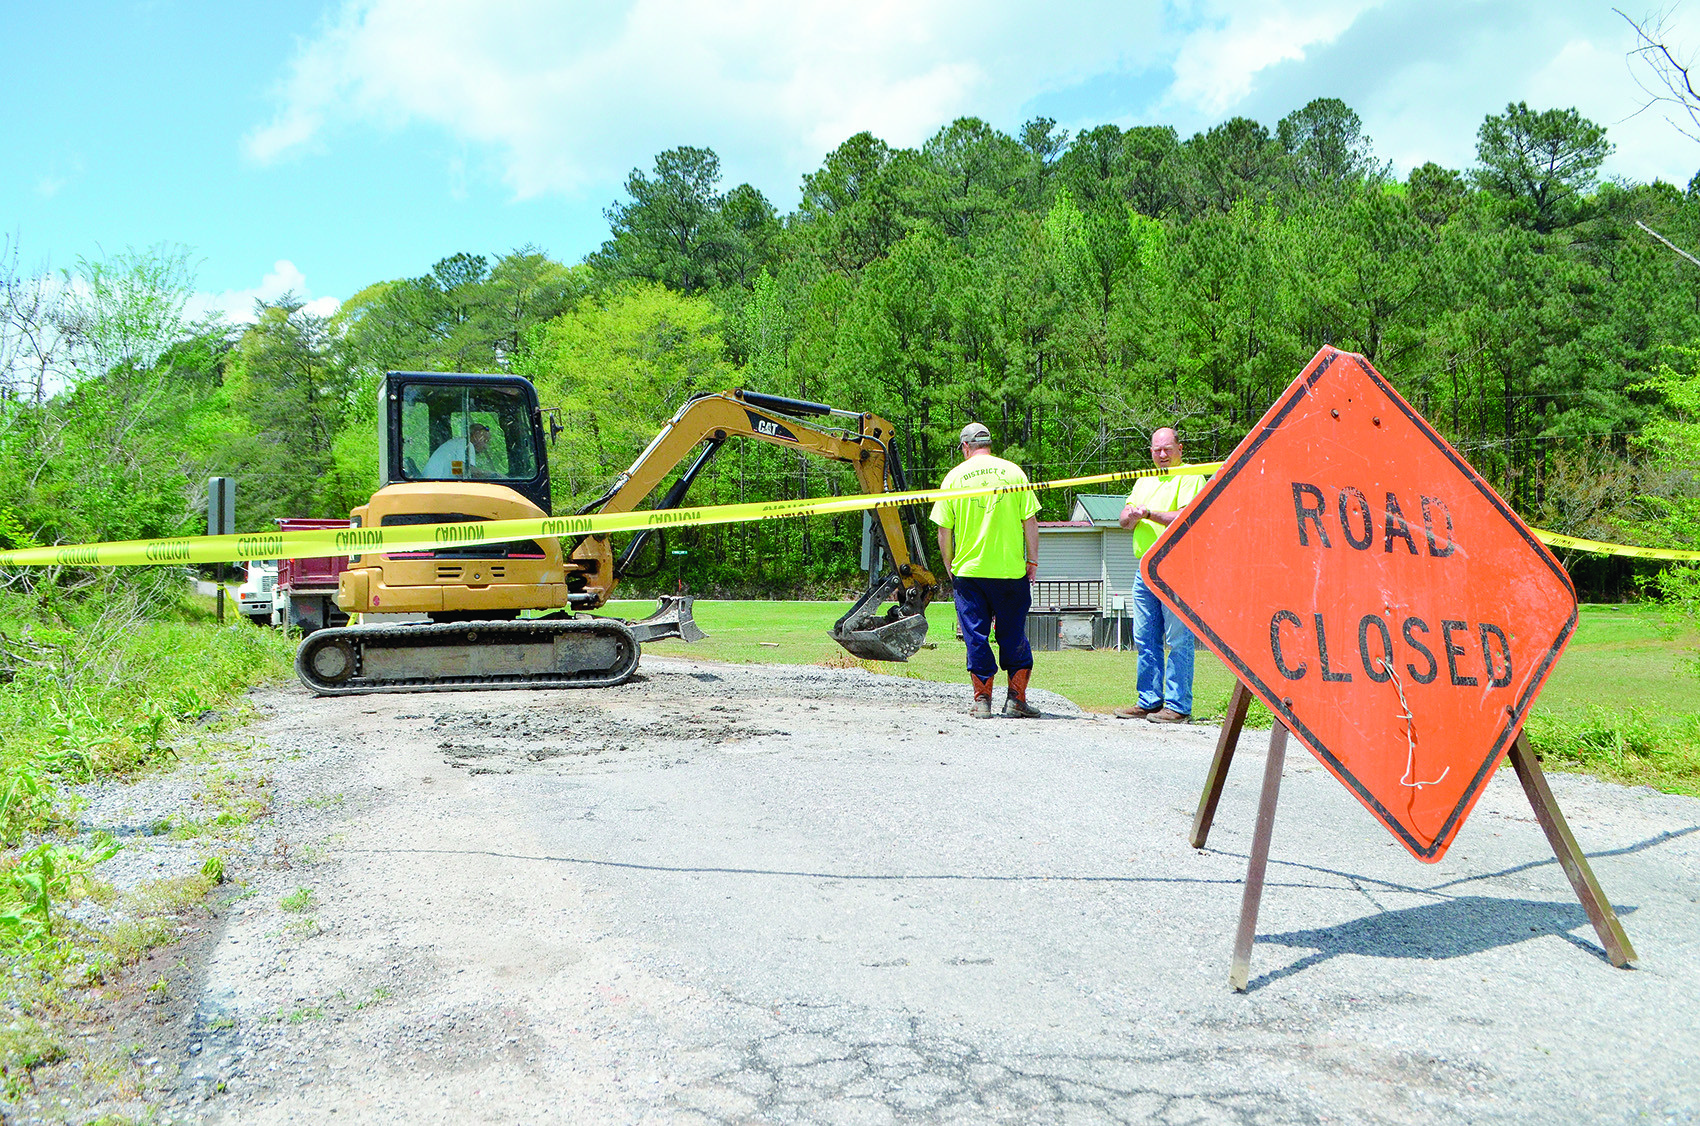 Crews worked Monday to patch an area of road near the intersection of School Street and Swindle Loop Road in Oakman that was washed out by floodwaters Sunday evening.